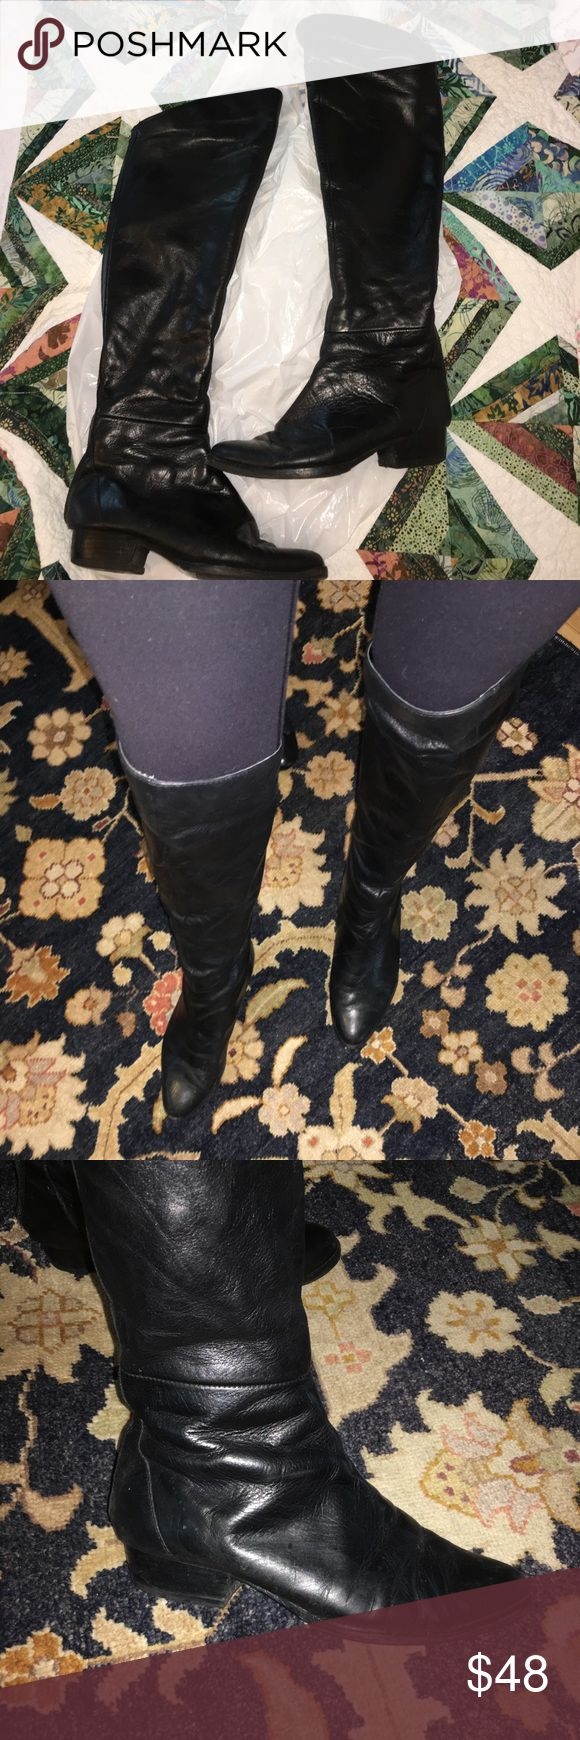 Dolce Vita black leather knee high boots Size 8 black leather knee high flat riding boot by Dolce Vita. Previously worn and are 3 years old purchased from Bloomingdales however I have brought them twice to the shoemaker prior to each season for a touch-up cleaning. Back zips up with no problem and new soles were put on this past September (2016). I am 5'7 with thin, but athletic legs and there is still room around my calf to knee levels. These fit right above my front knee when worn…